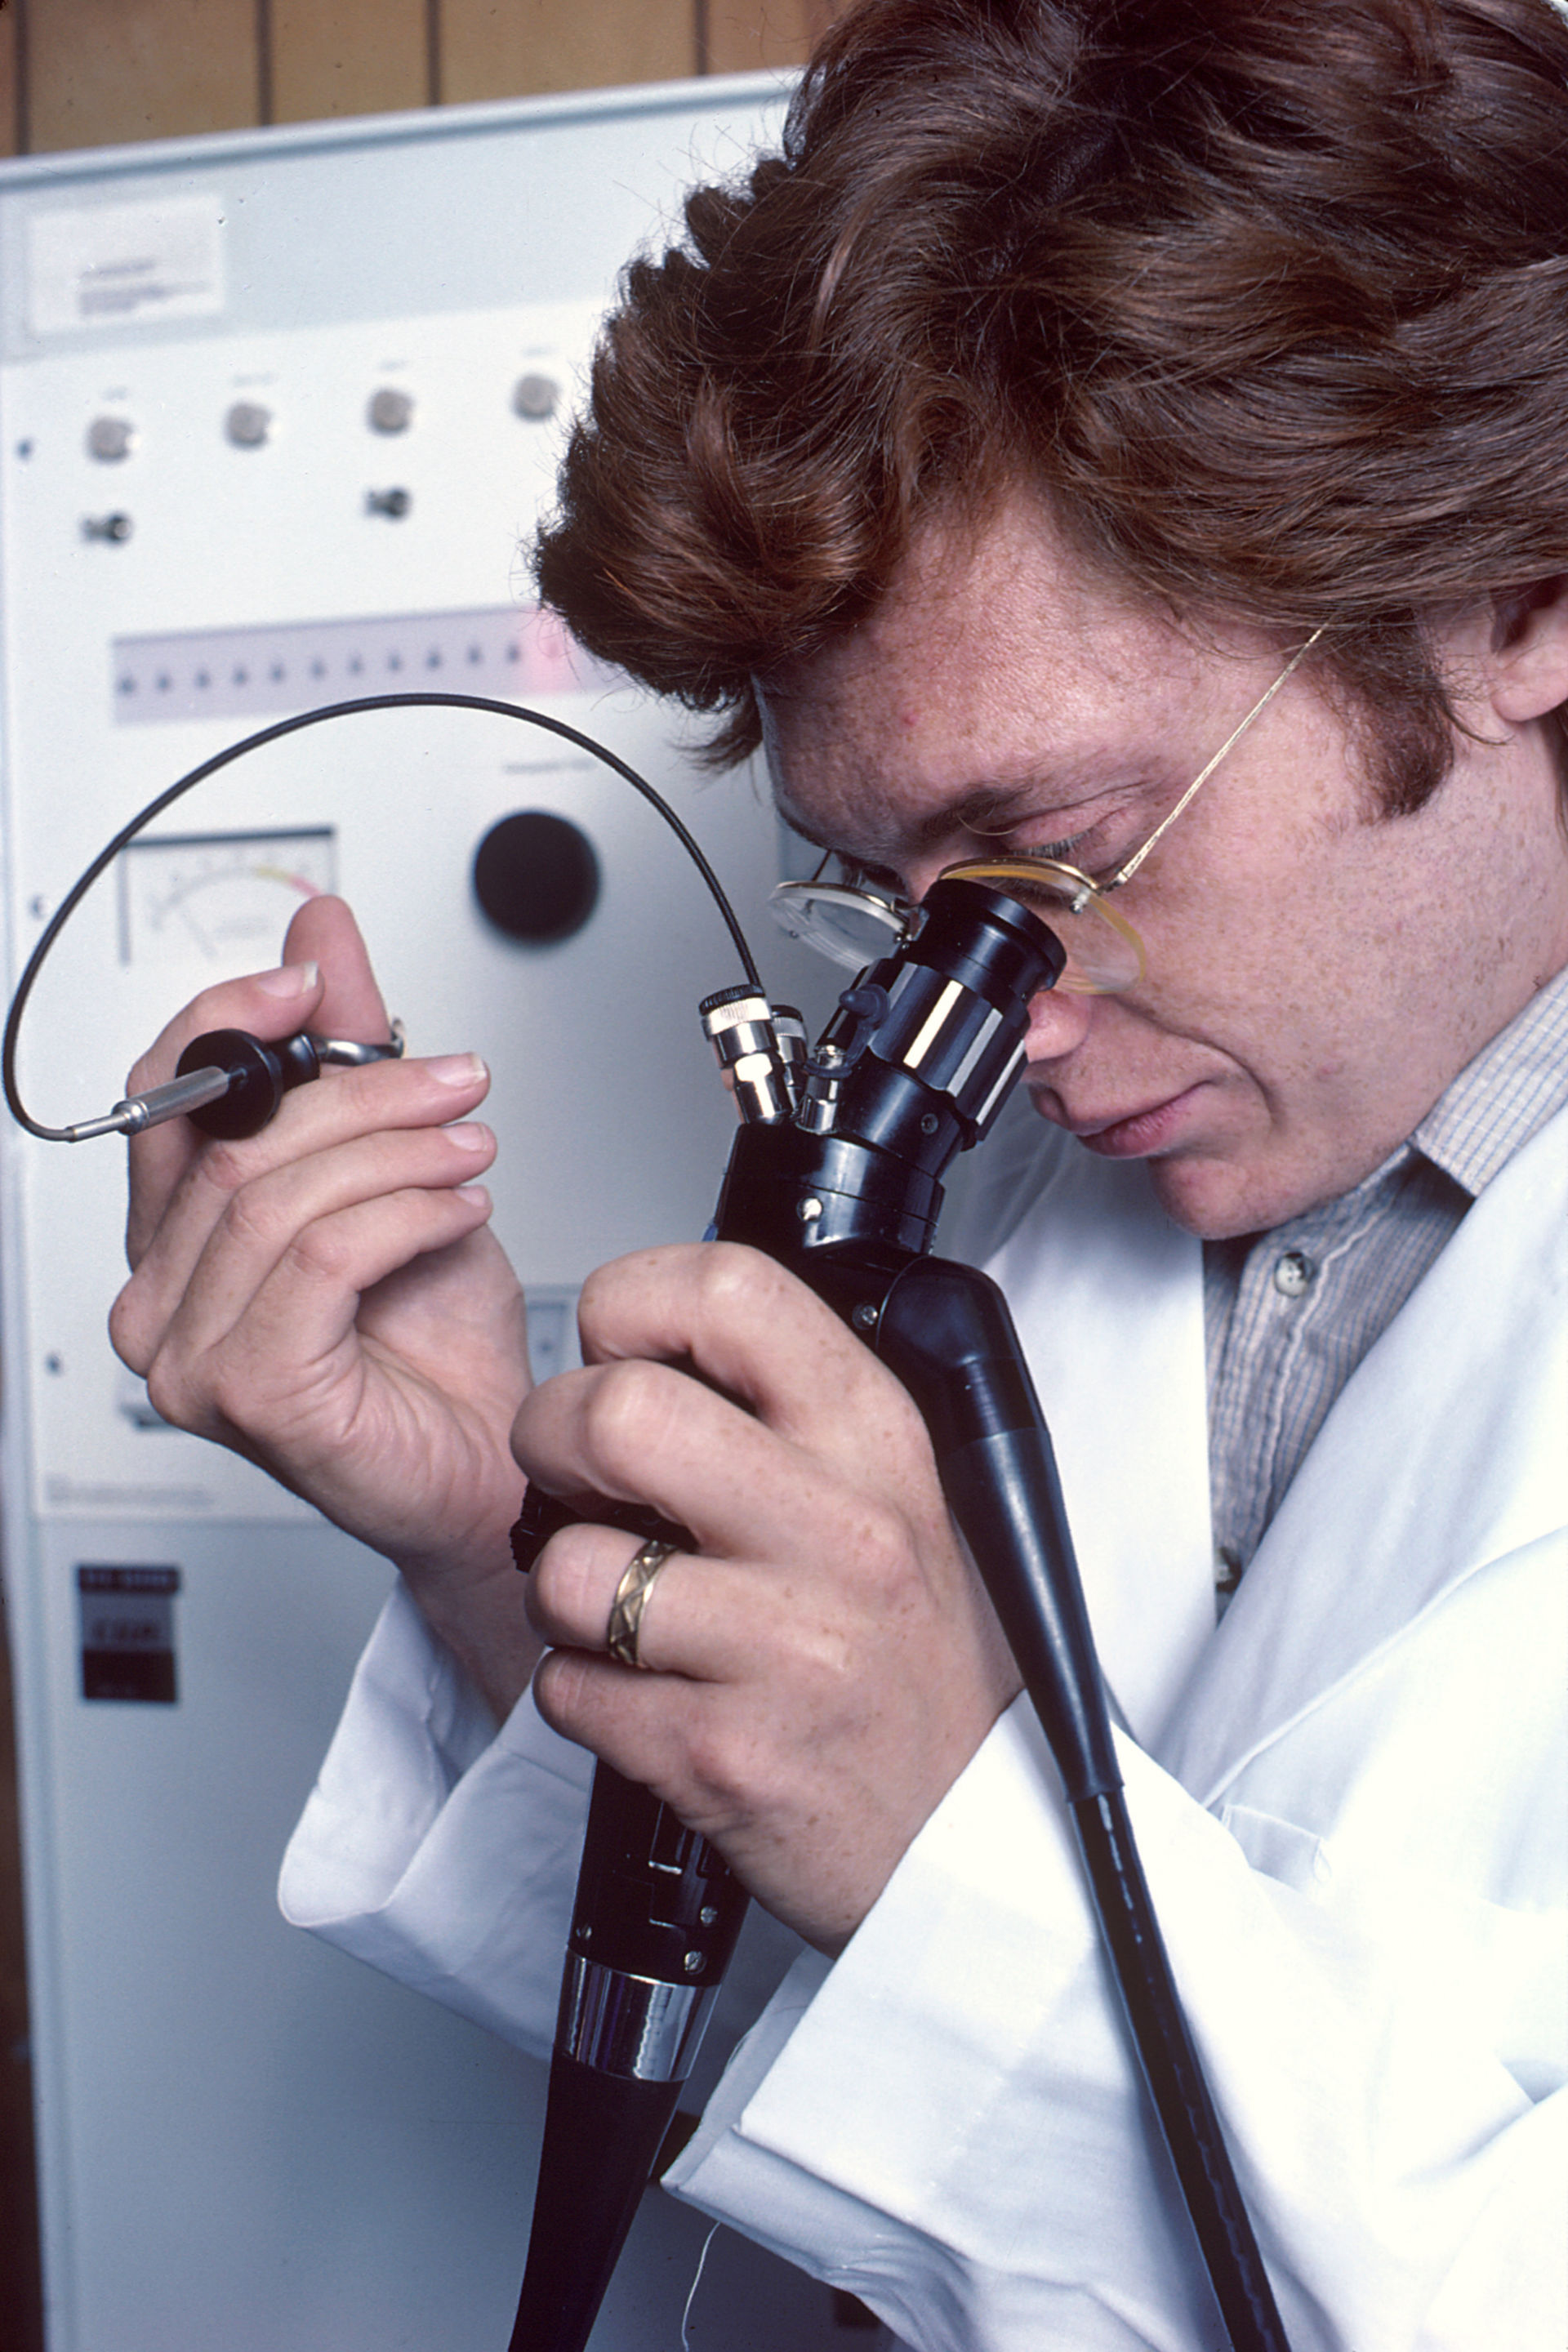 Physician using an endoscope